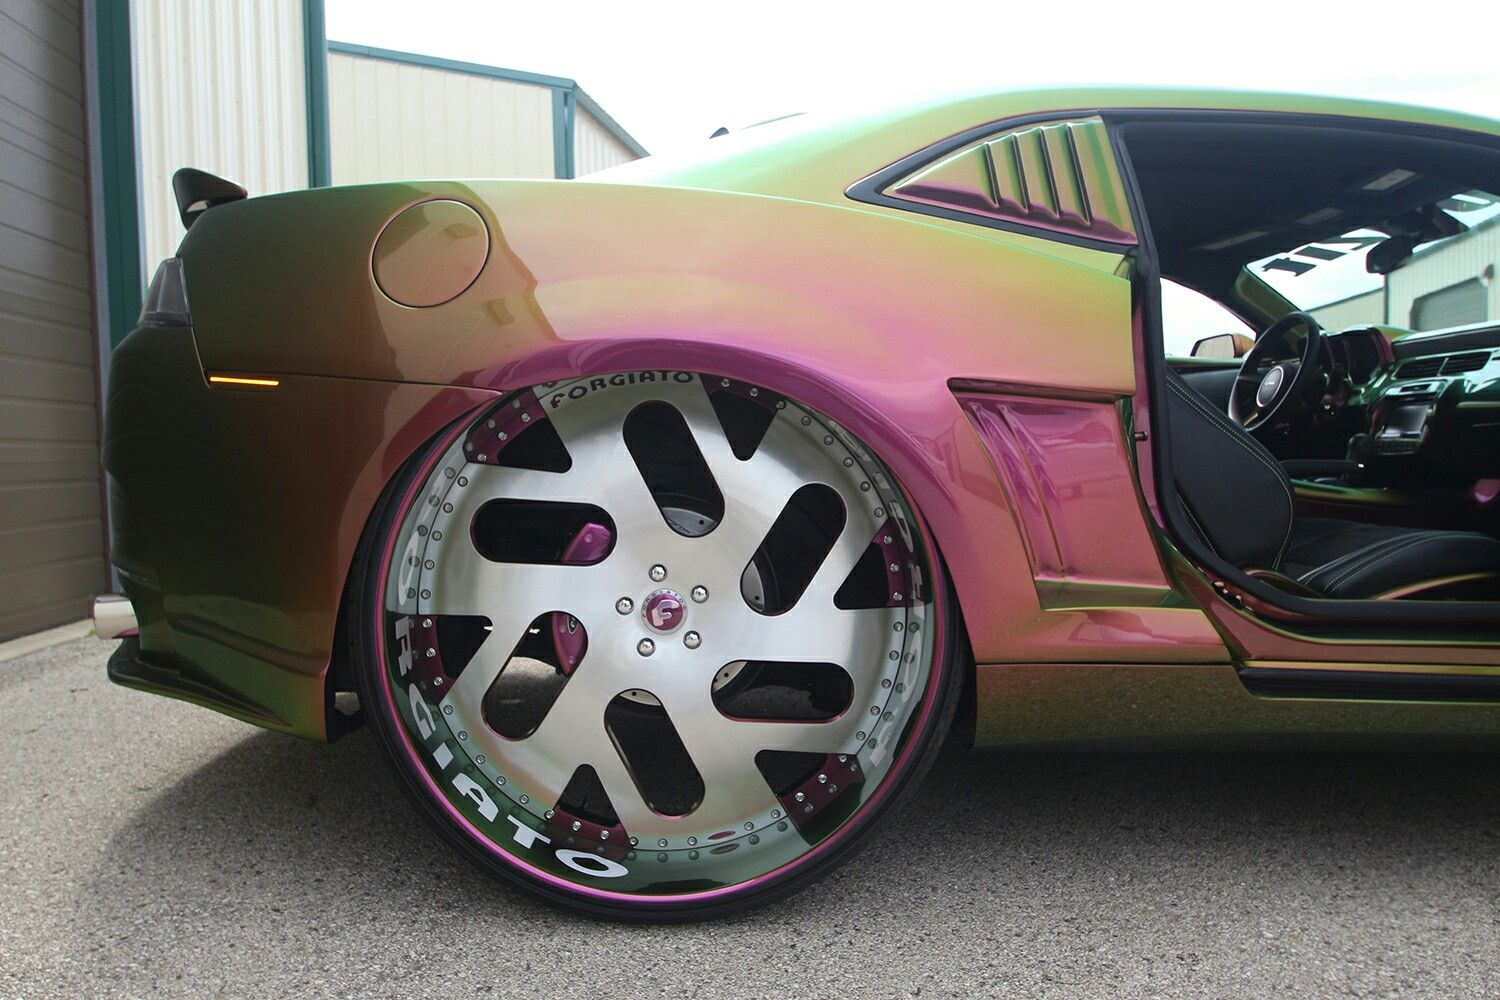 Pin by oh10fnst on whips Camaro, Car, Wheel